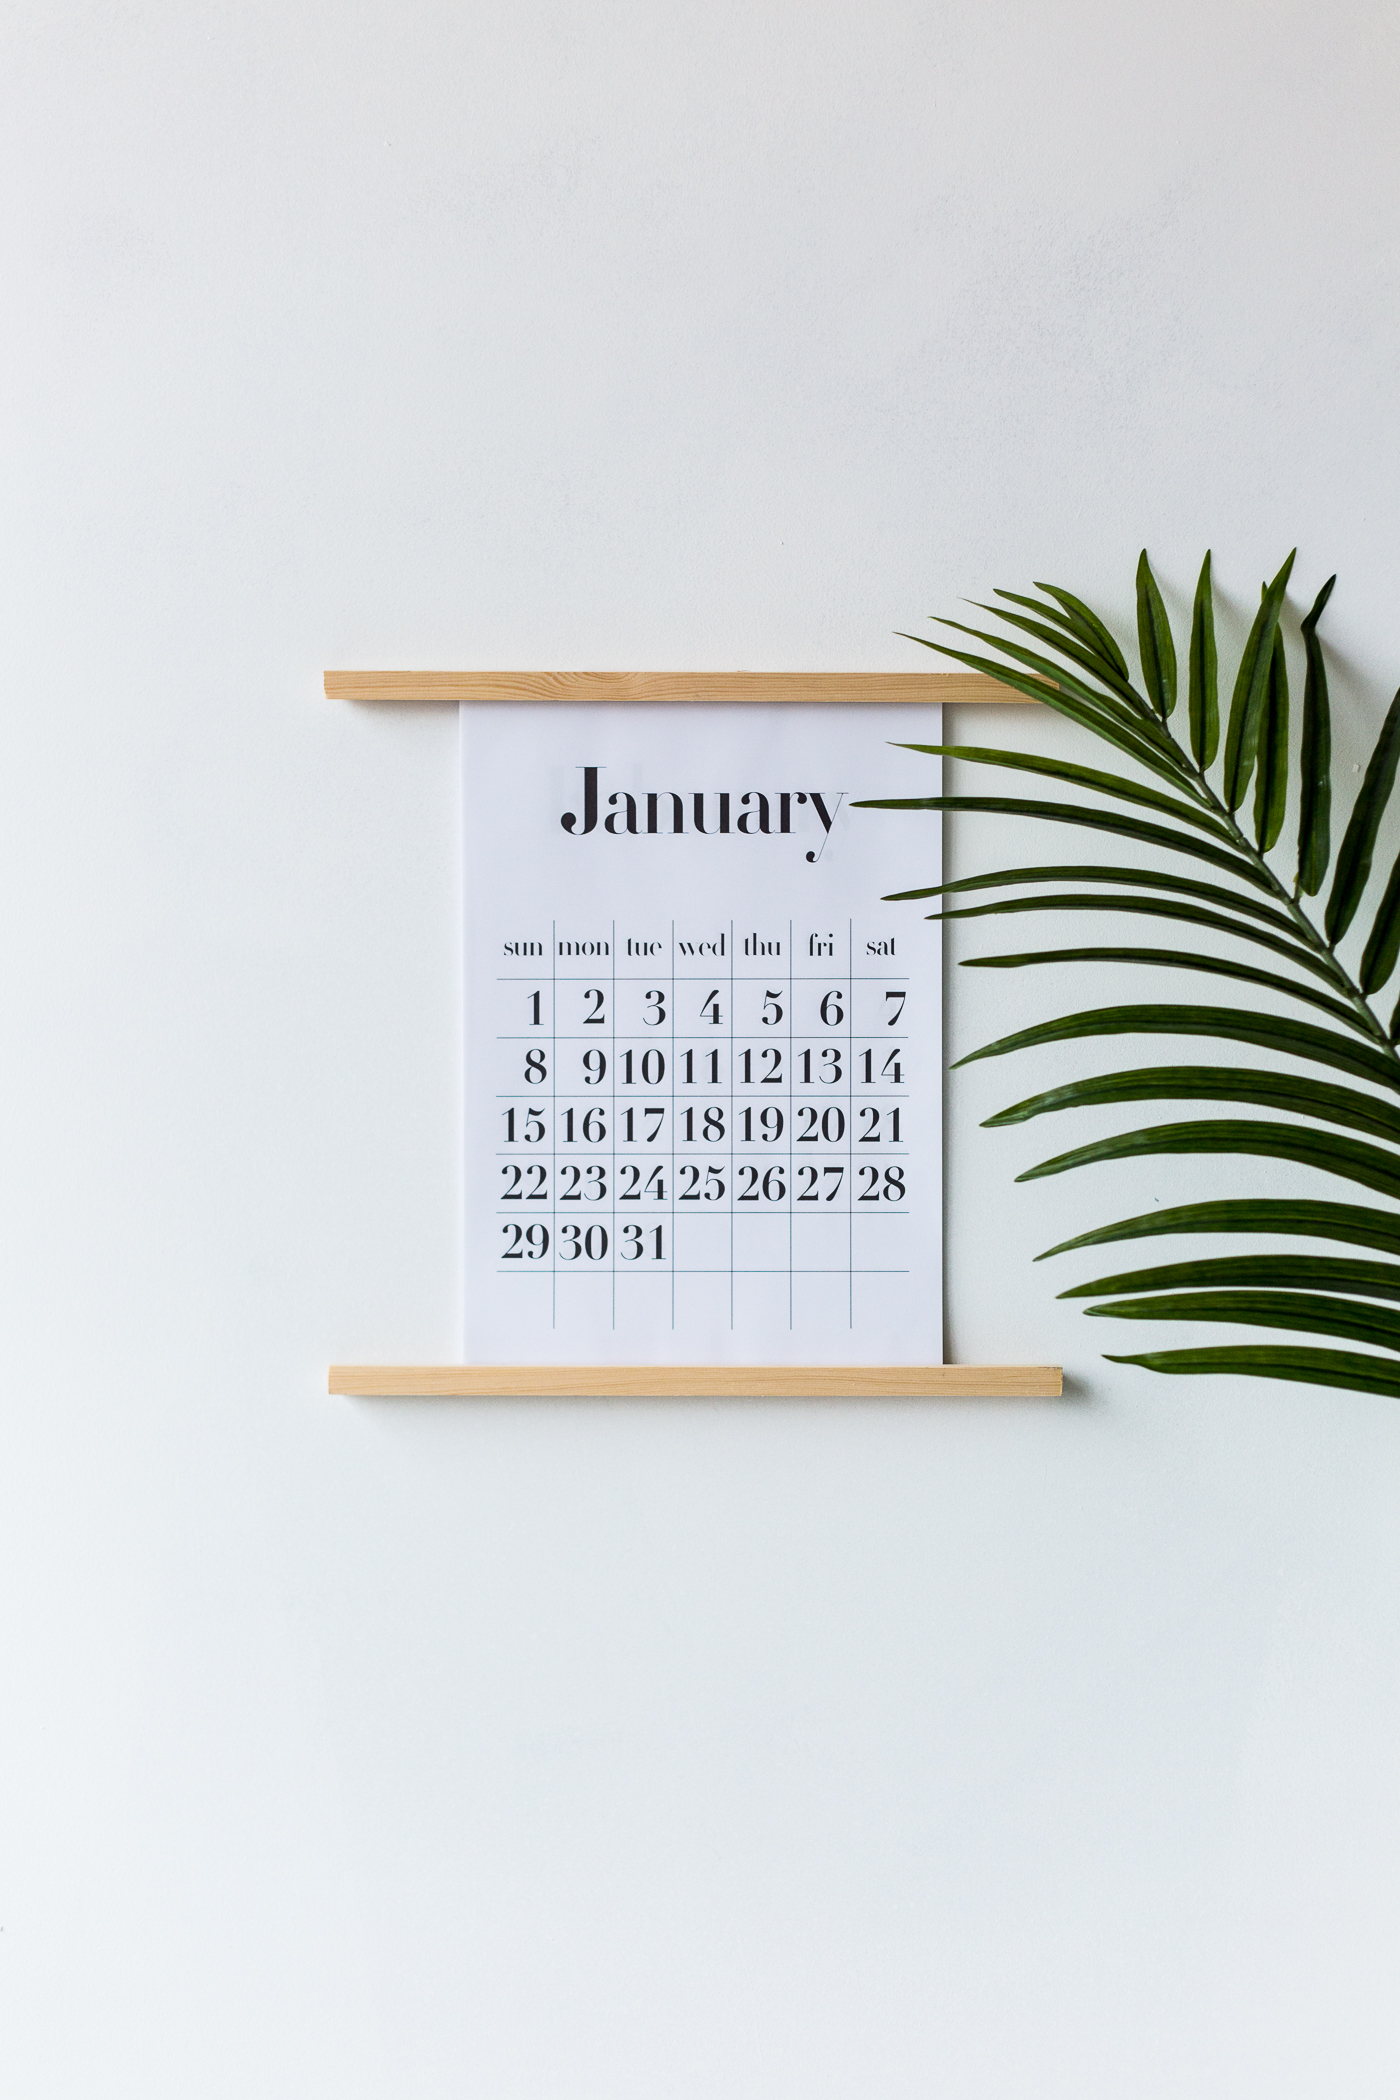 Diy Calendar With Stand : Diy calendar wall stand free a printable